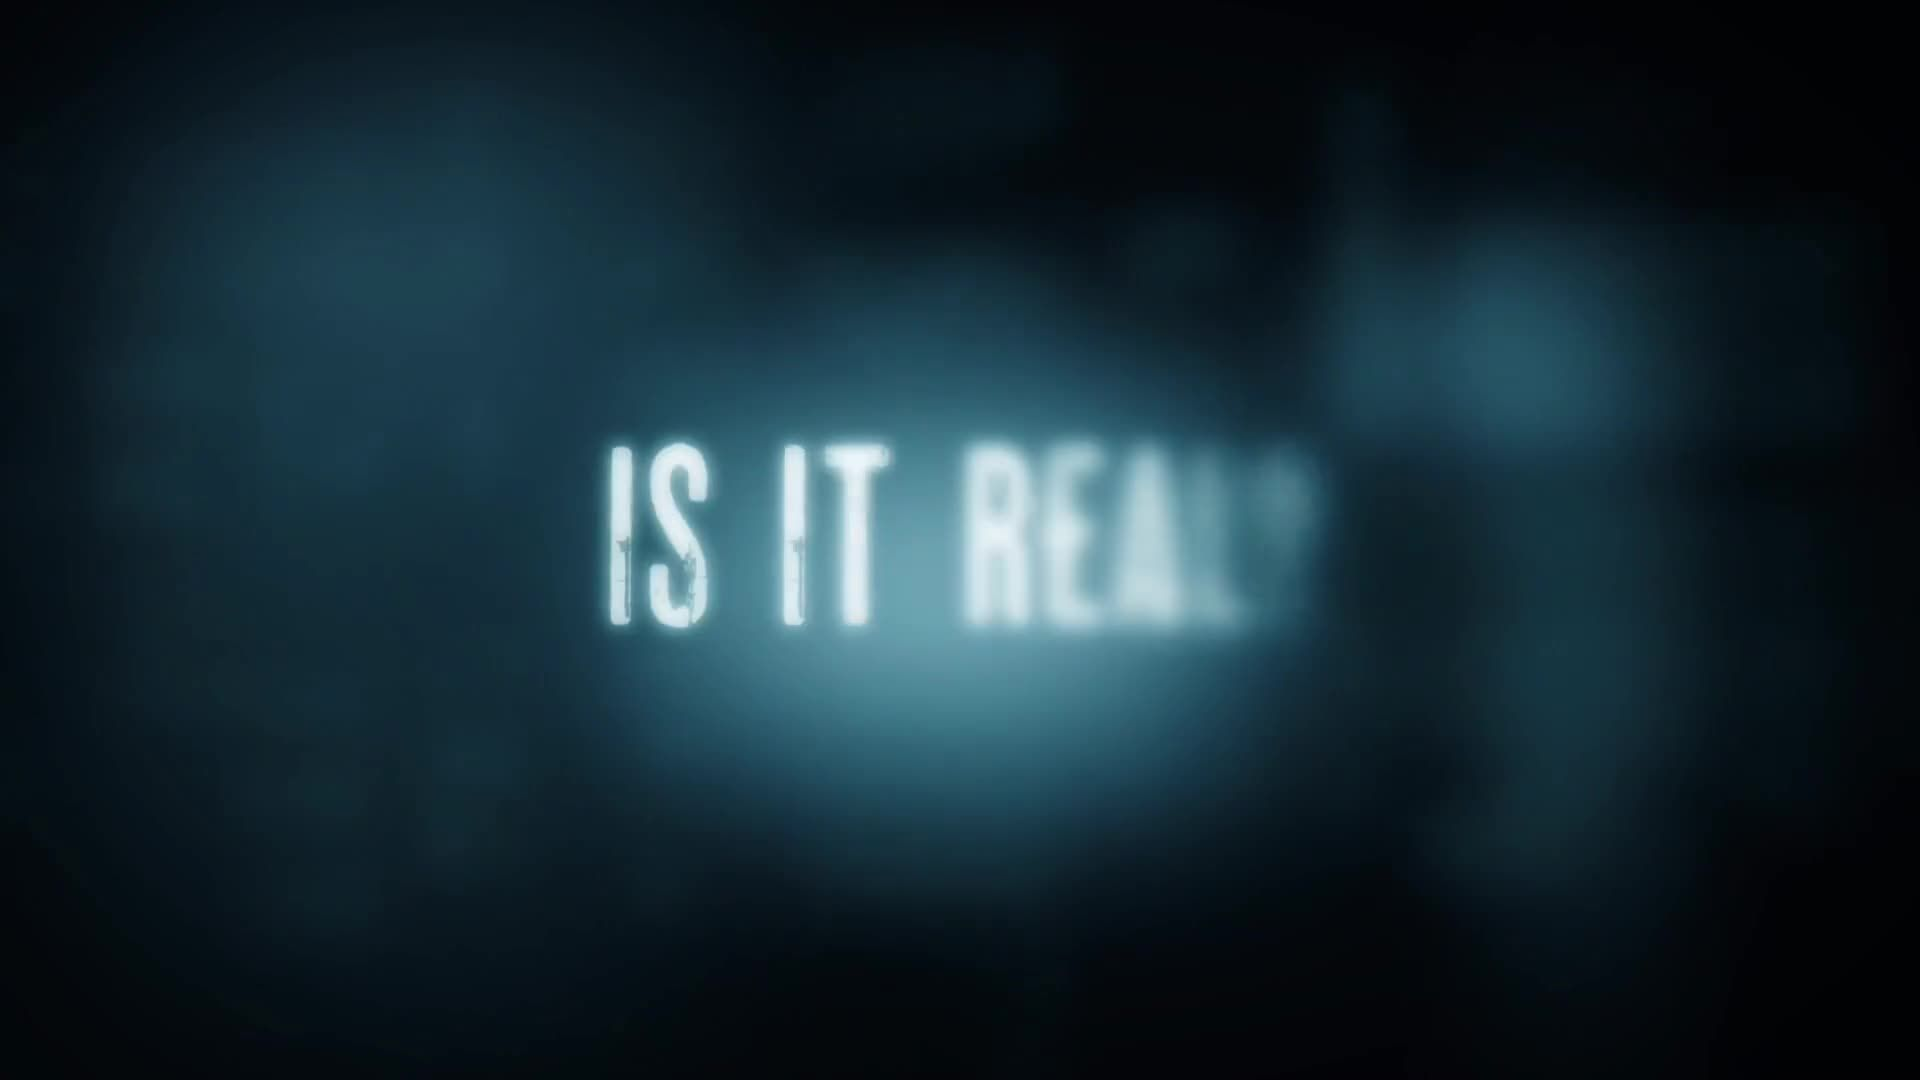 Is It Real Teaser